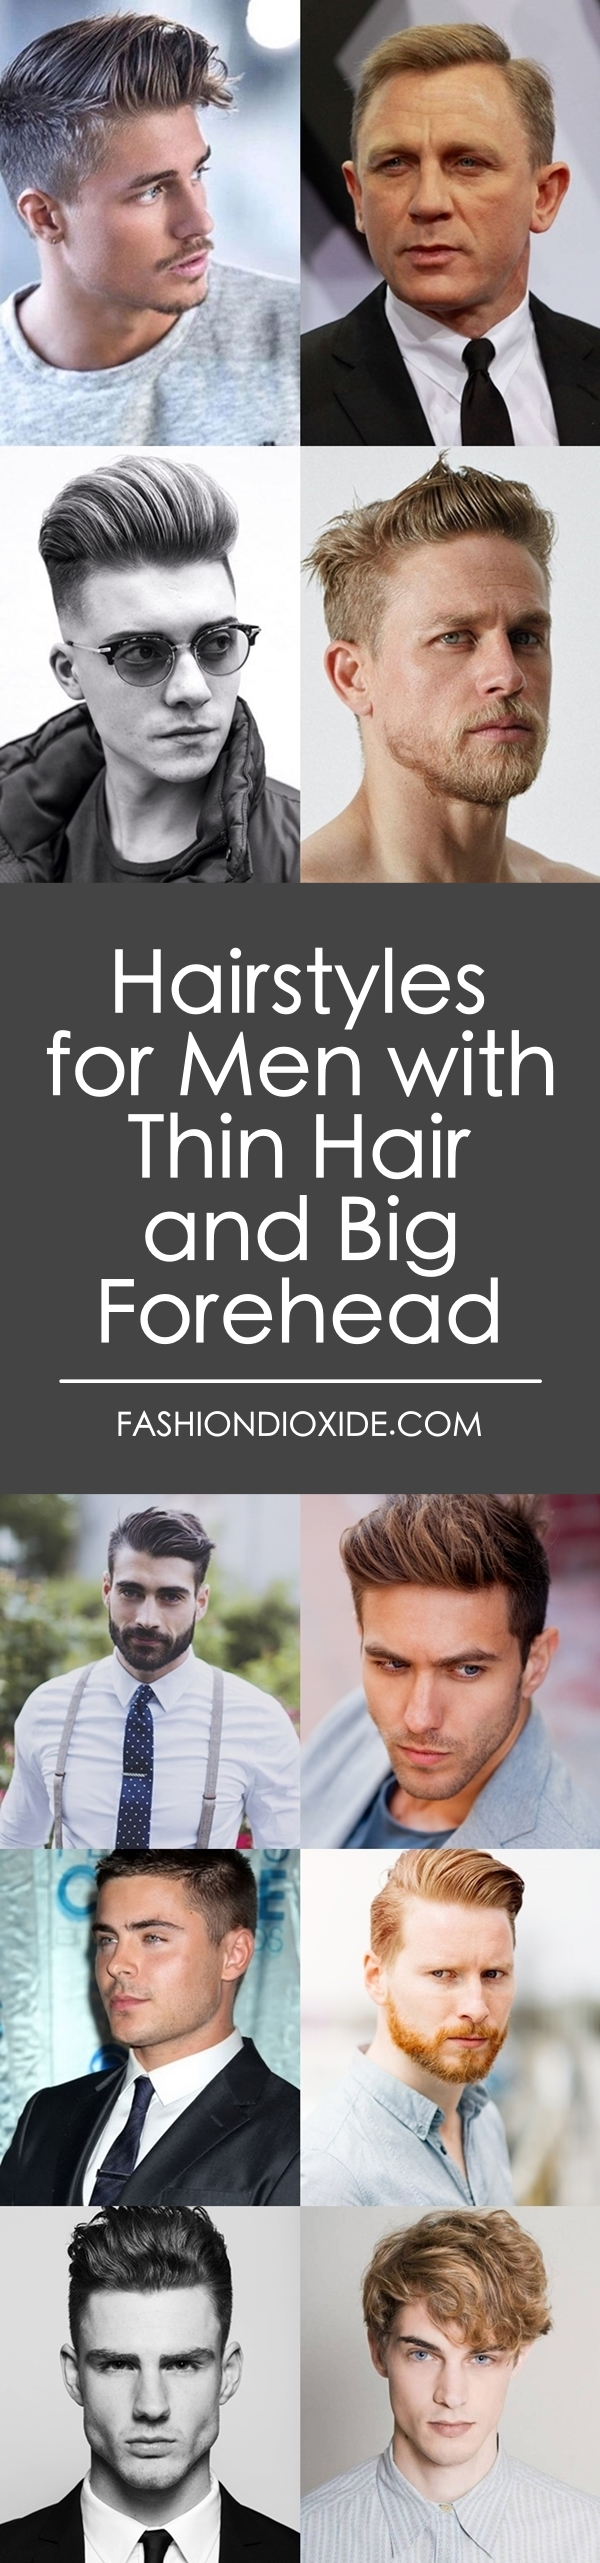 40 hairstyles for men with thin hair and big forehead - fashiondioxide